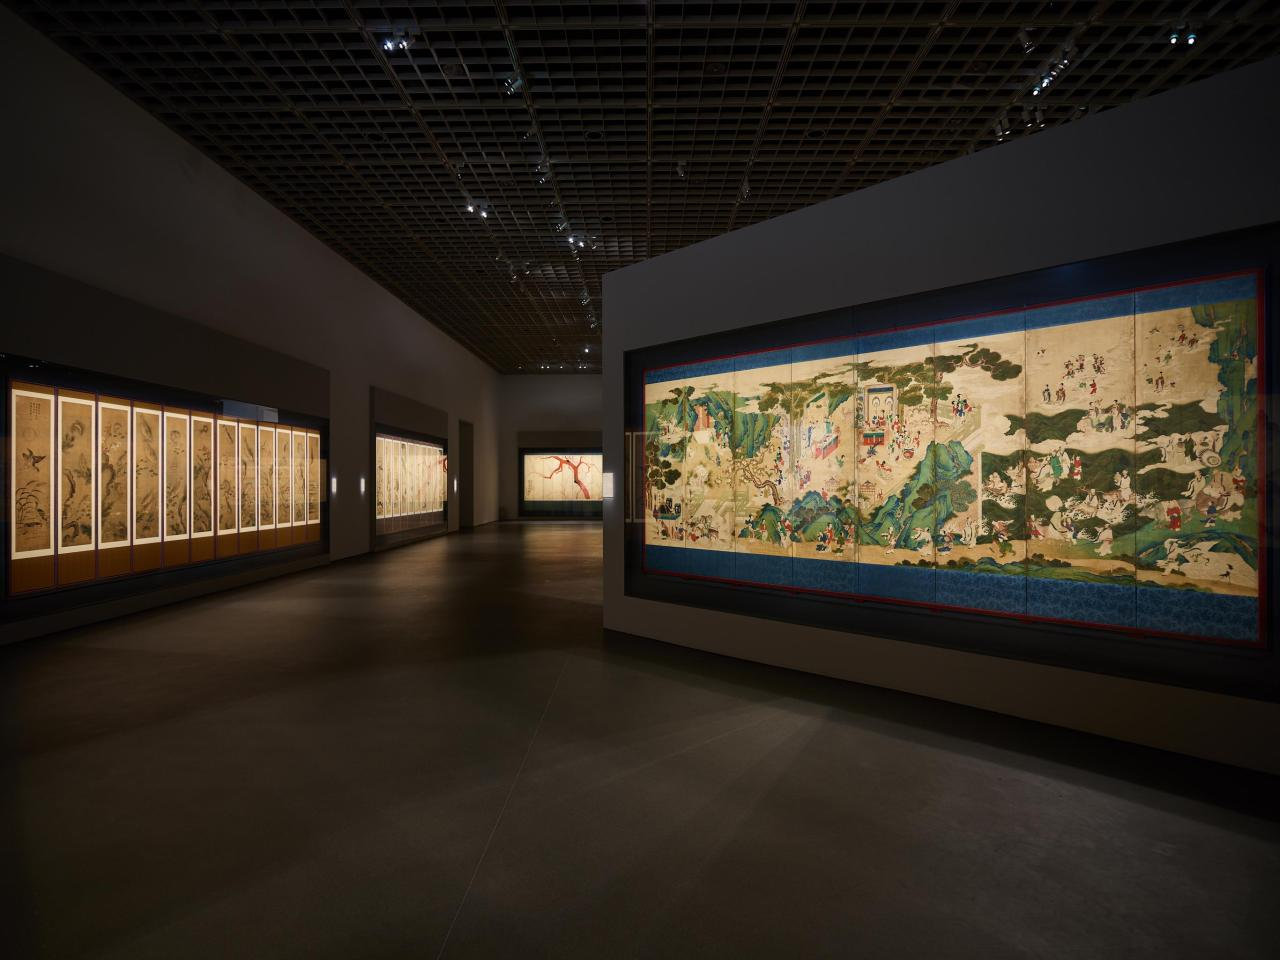 """Installation view of """"APMA, Chapter Two"""" at the Amorepacific Museum of Art (APMA)"""